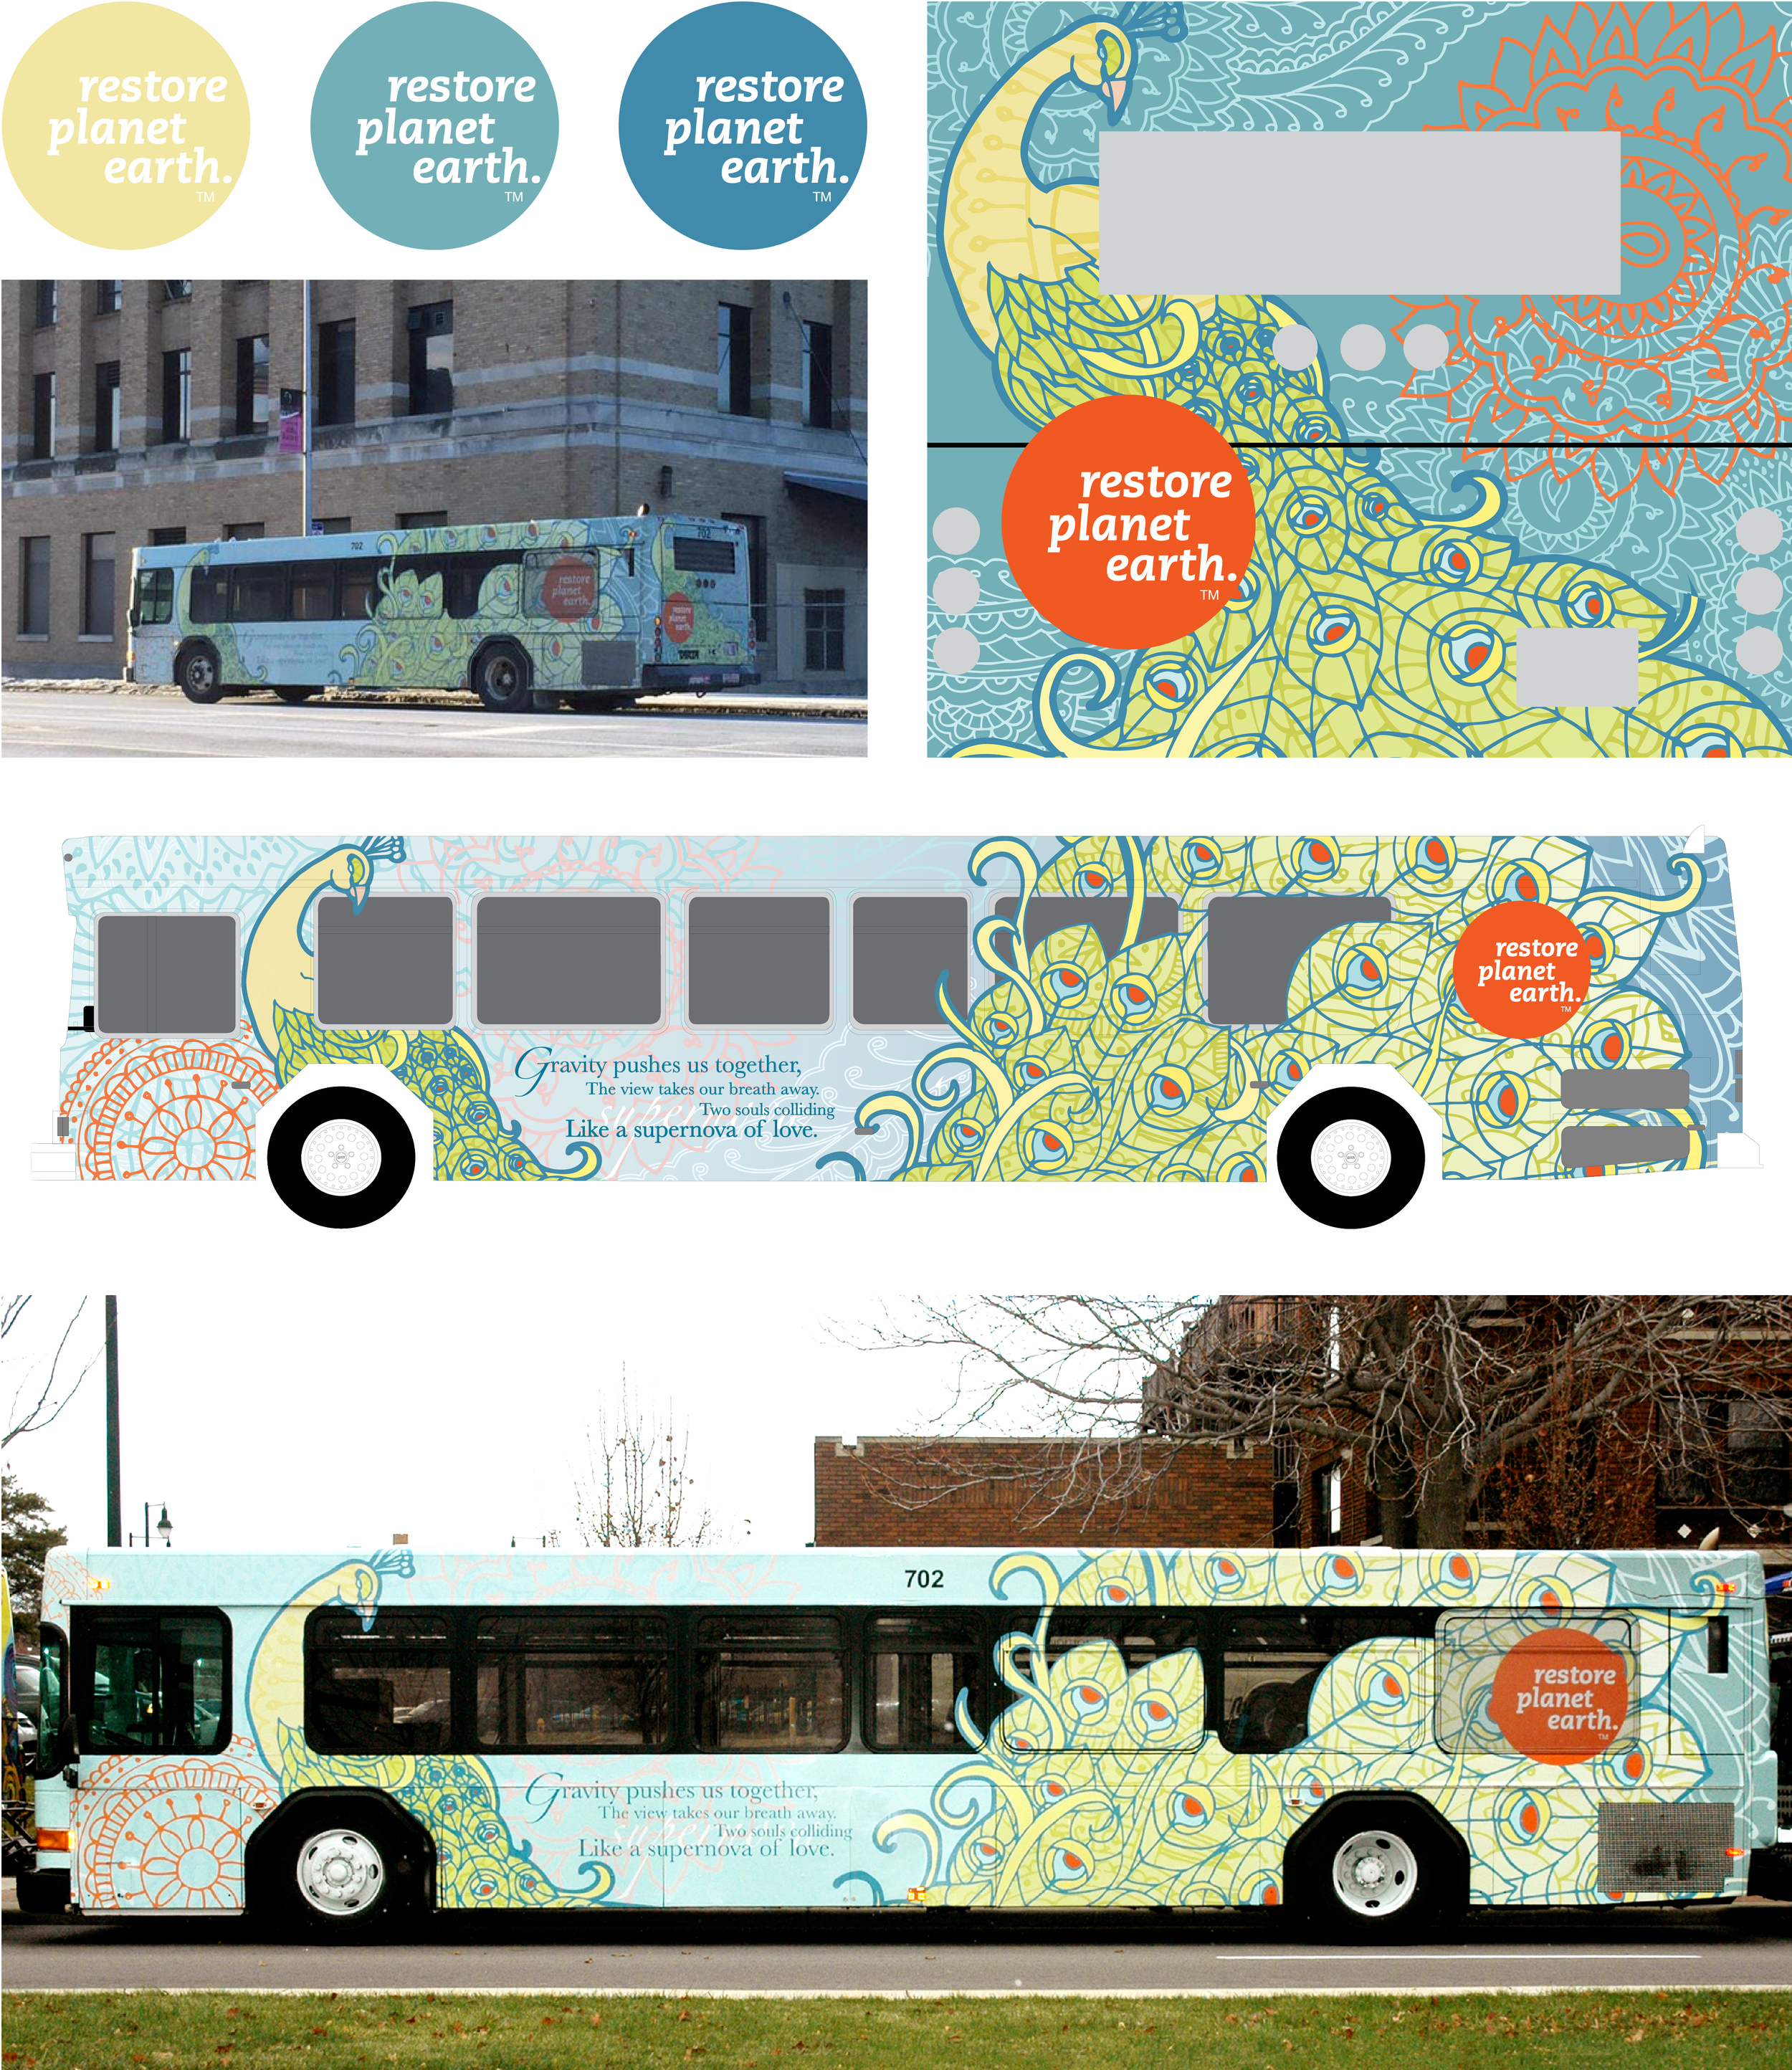 Art in TARTA   selected 2 designs, which are still currently driving around Toledo, Ohio. I had the freedom to illustrate the message in any way, with the only requirement of using their logo    on the bus,   in the color palette I chose. These photos show my final illustrations that were submitted and approved by the committee, as well as the buses after the bus wrap was placed on their normal city bus.